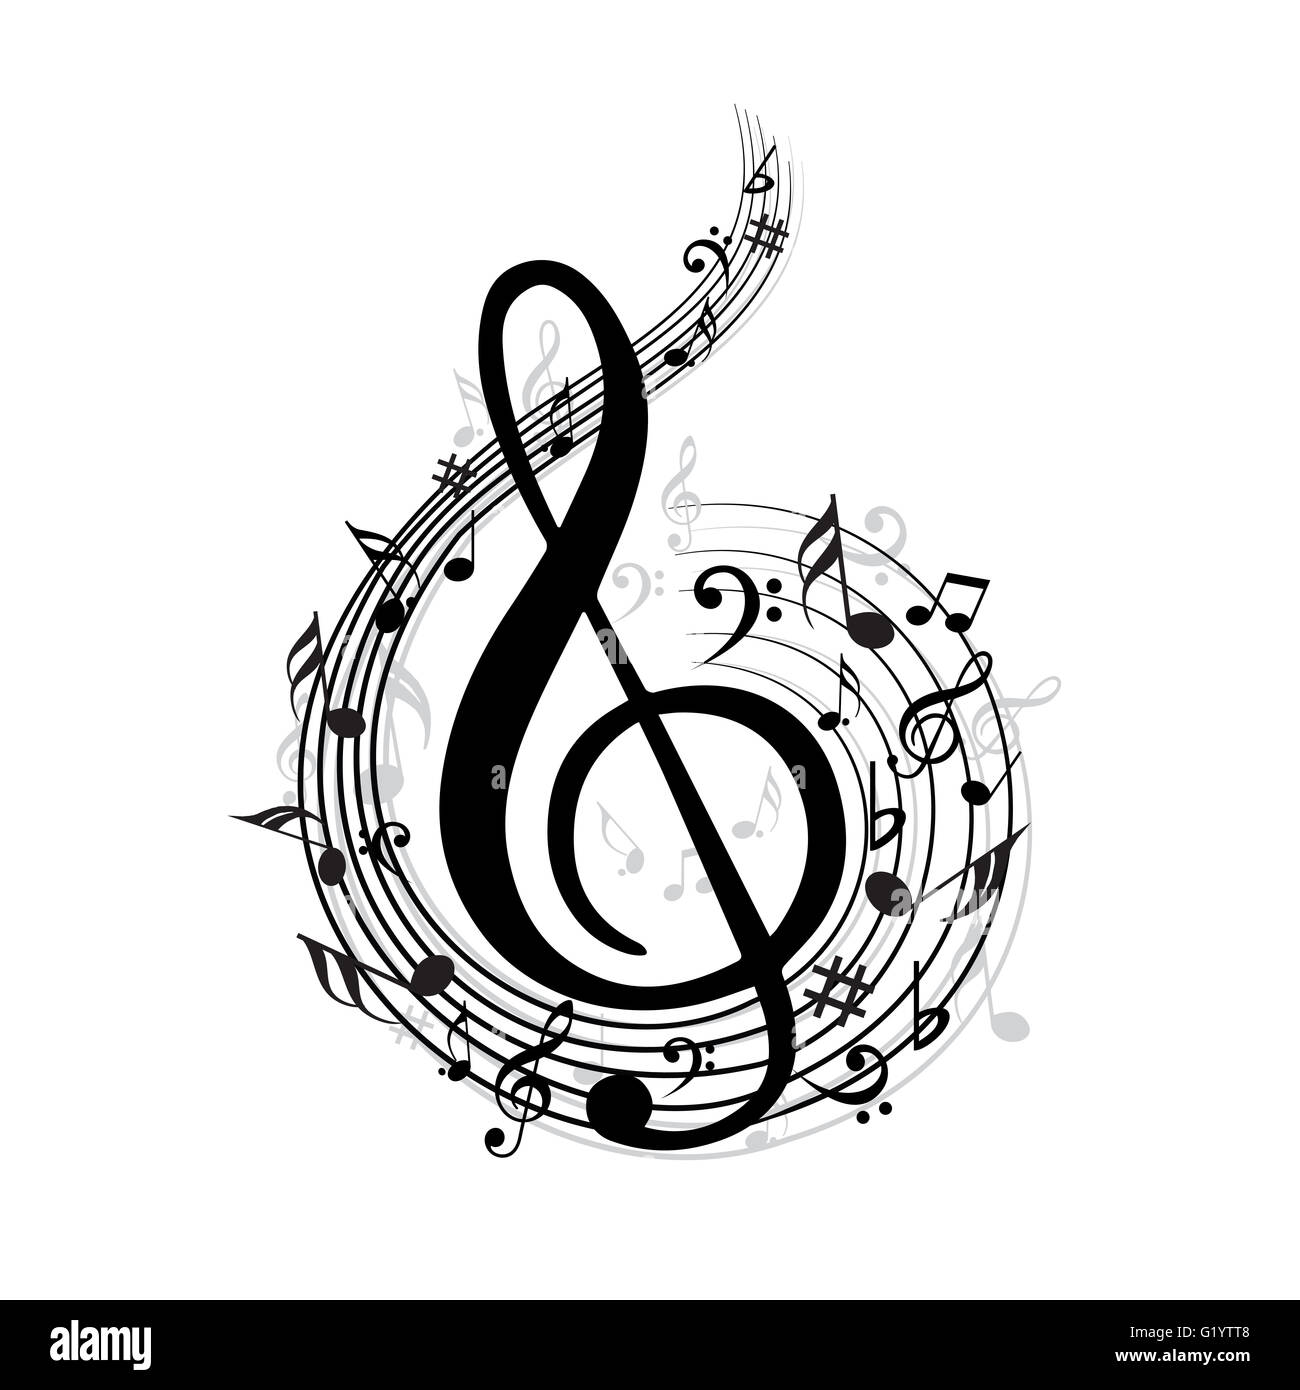 Music Note With Music Symbols Stock Photo 104489064 Alamy